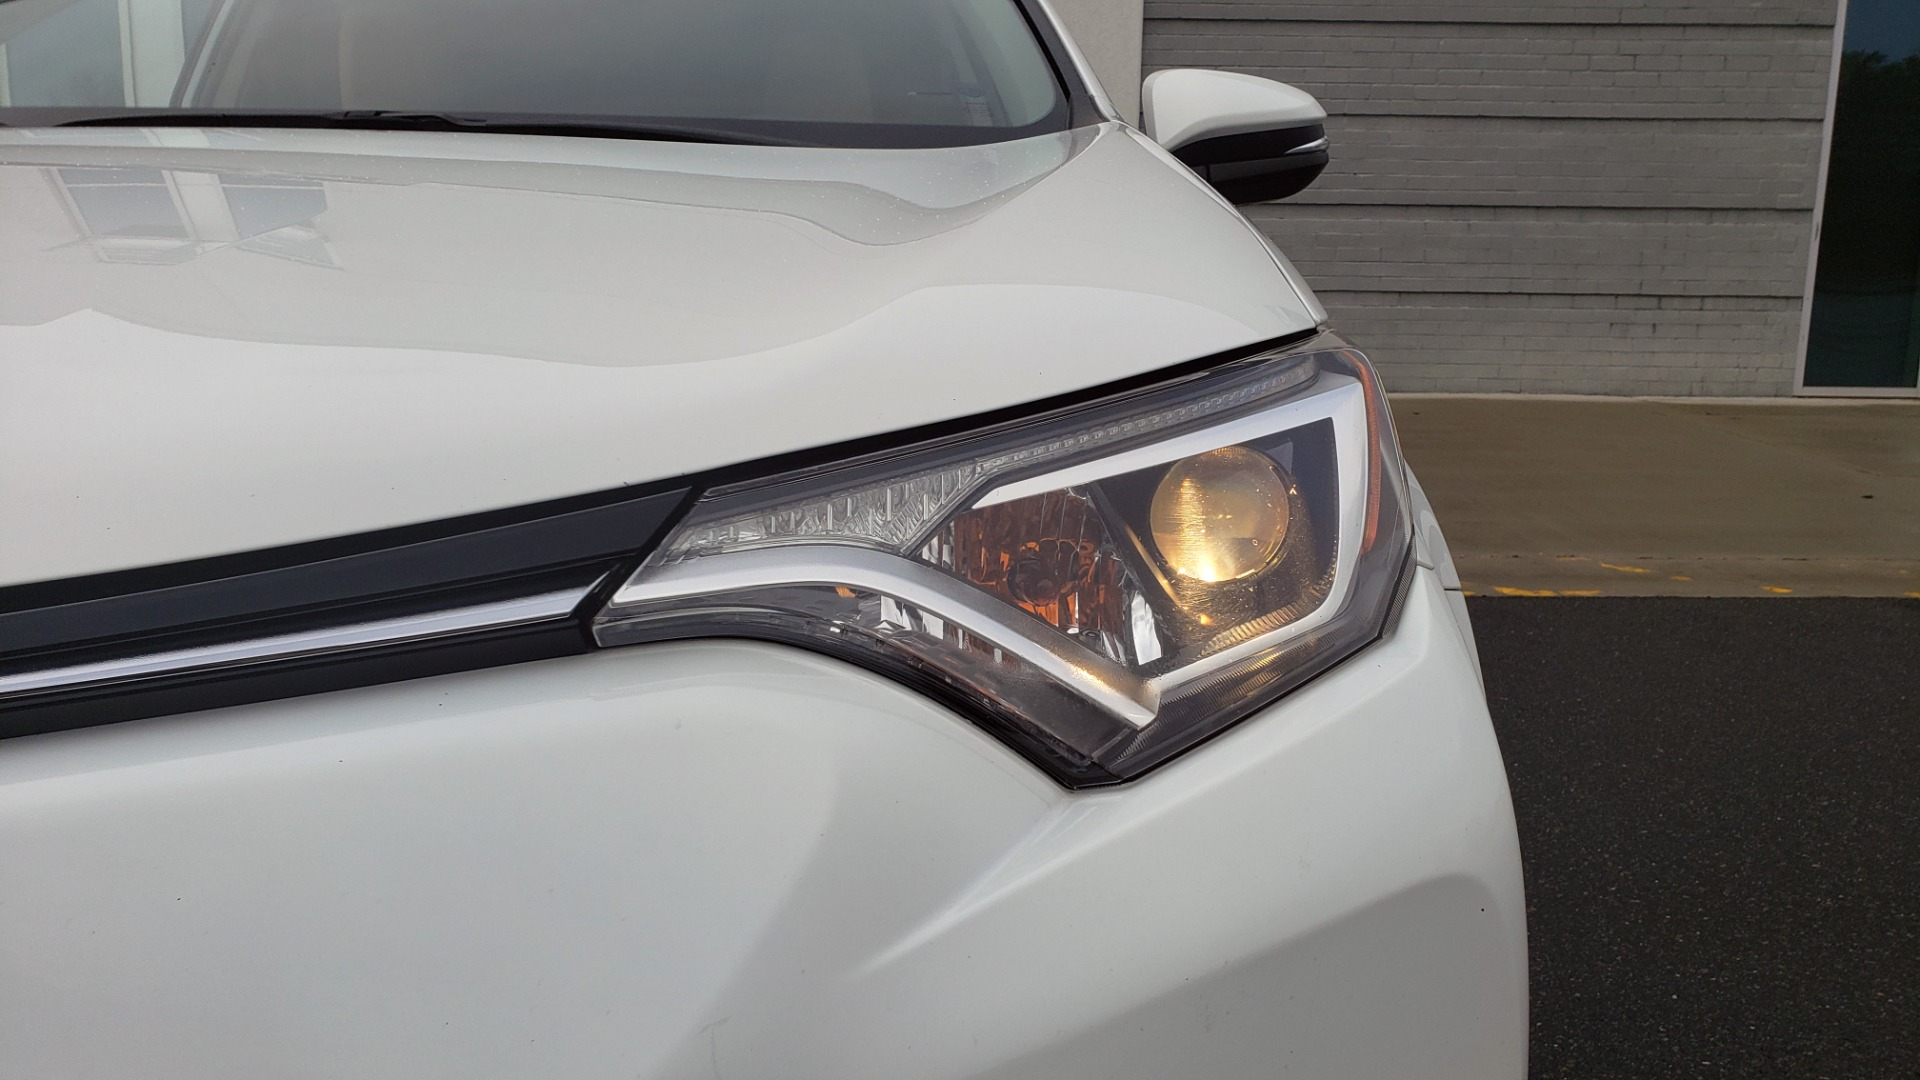 Used 2018 Toyota RAV4 XLE / FWD / 4-CYL / 6-SPD AUTO / BSM / REAR CROSS TRAFFIC ALERT for sale Sold at Formula Imports in Charlotte NC 28227 22